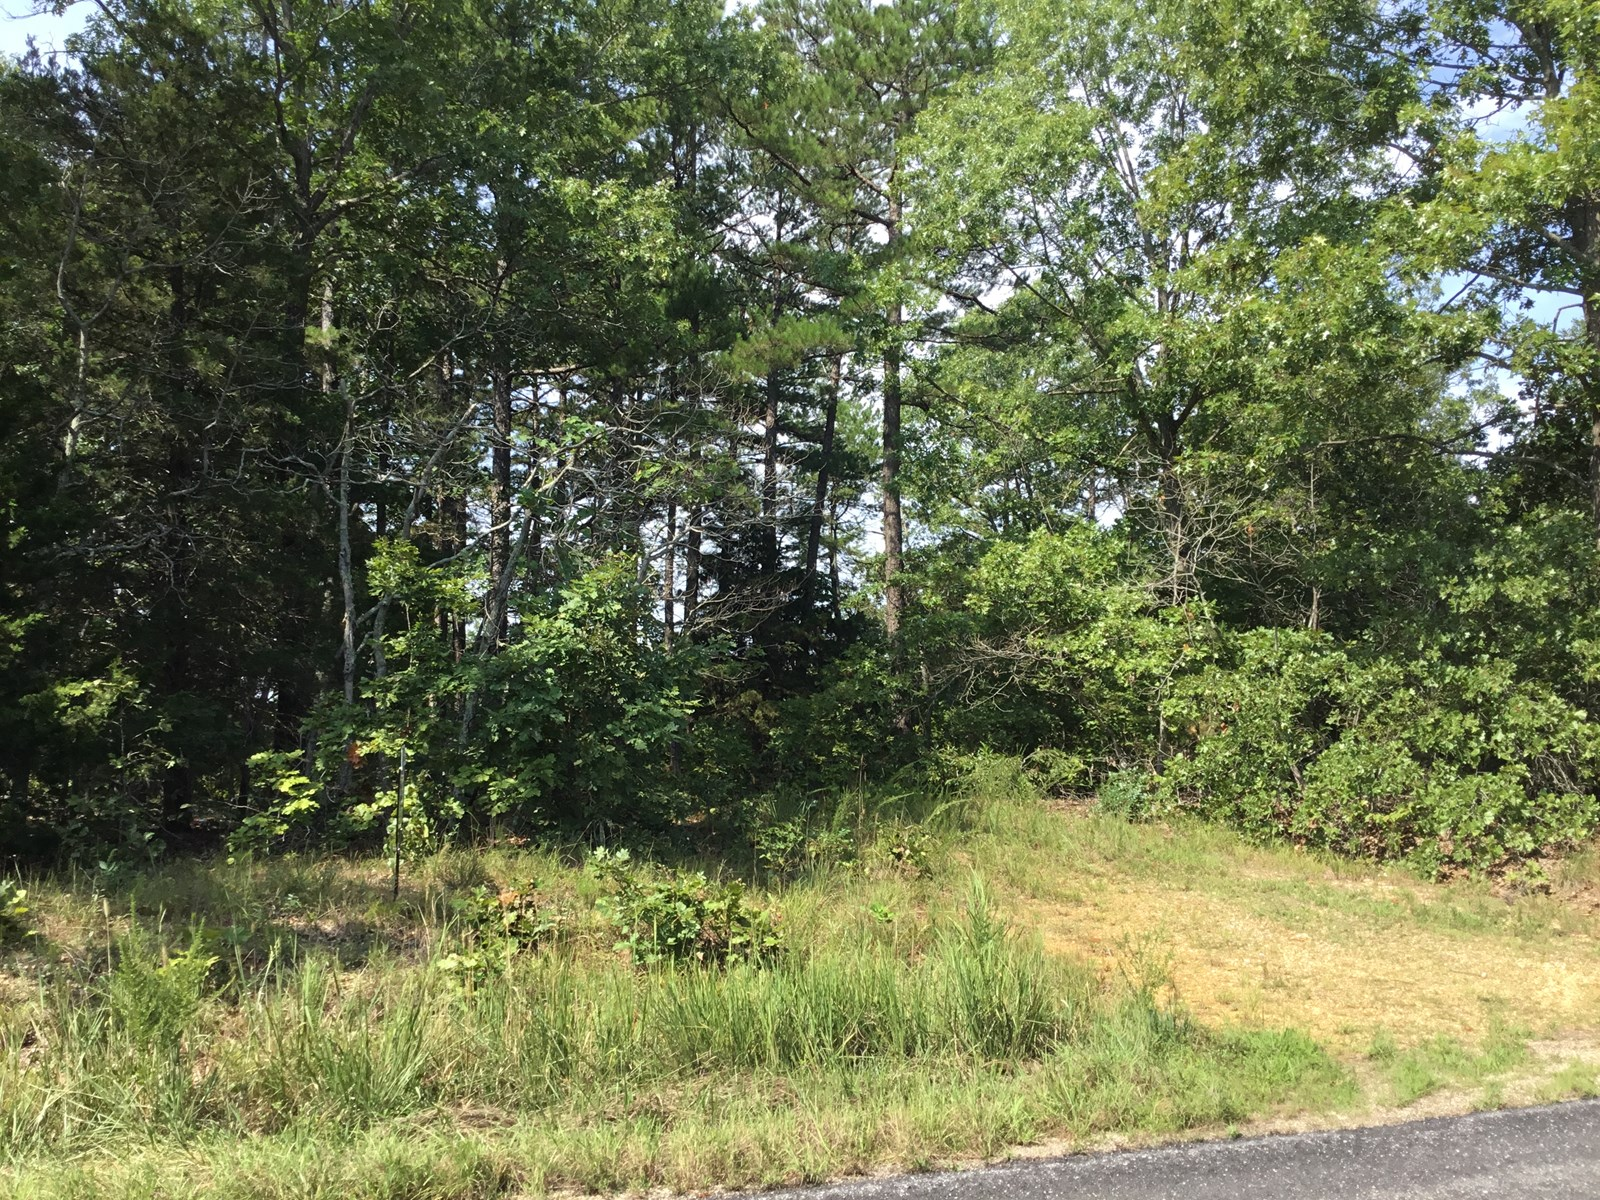 Land for Sale in the Ozarks - Wooded - Highway Frontage